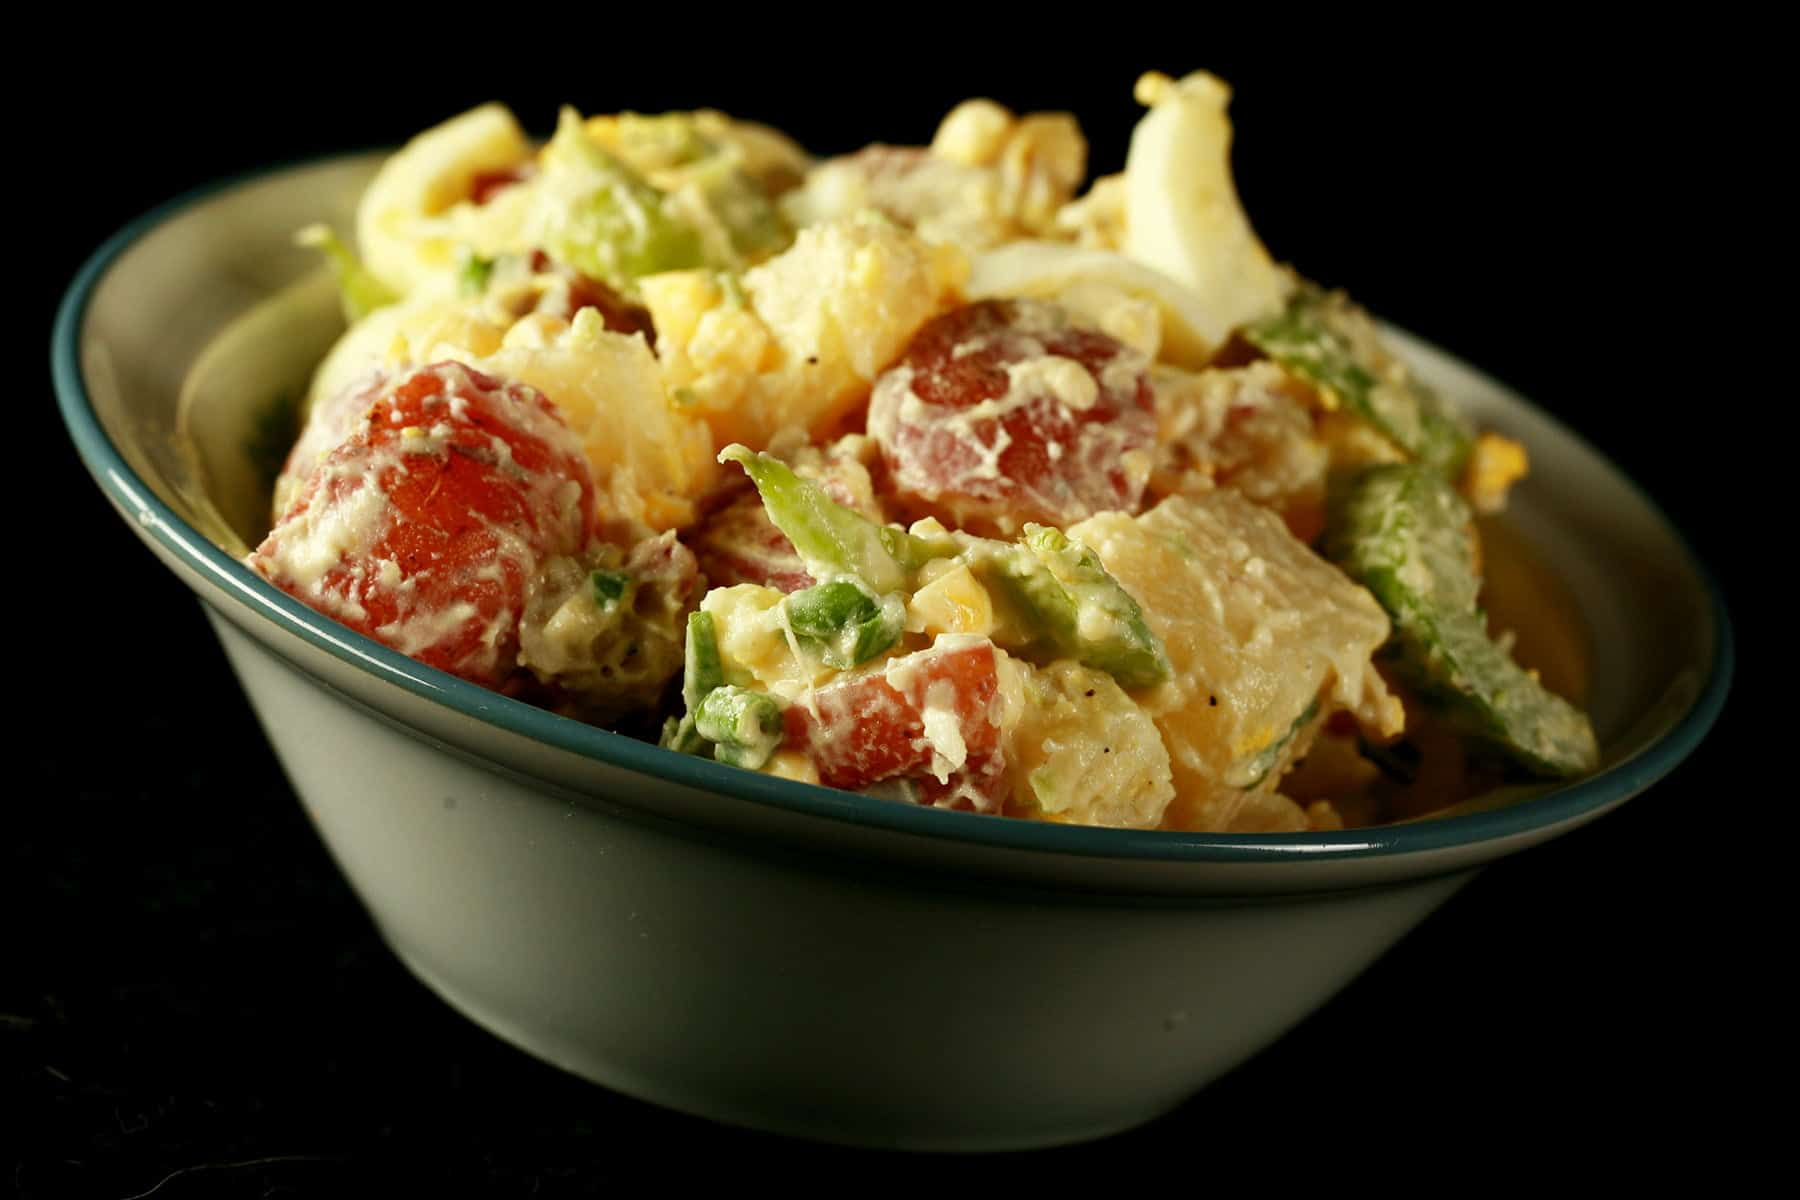 A bowl of a creamy smoked potato salad. Chunks of red potatos, celery slices, and hard boiled egg are all visible.